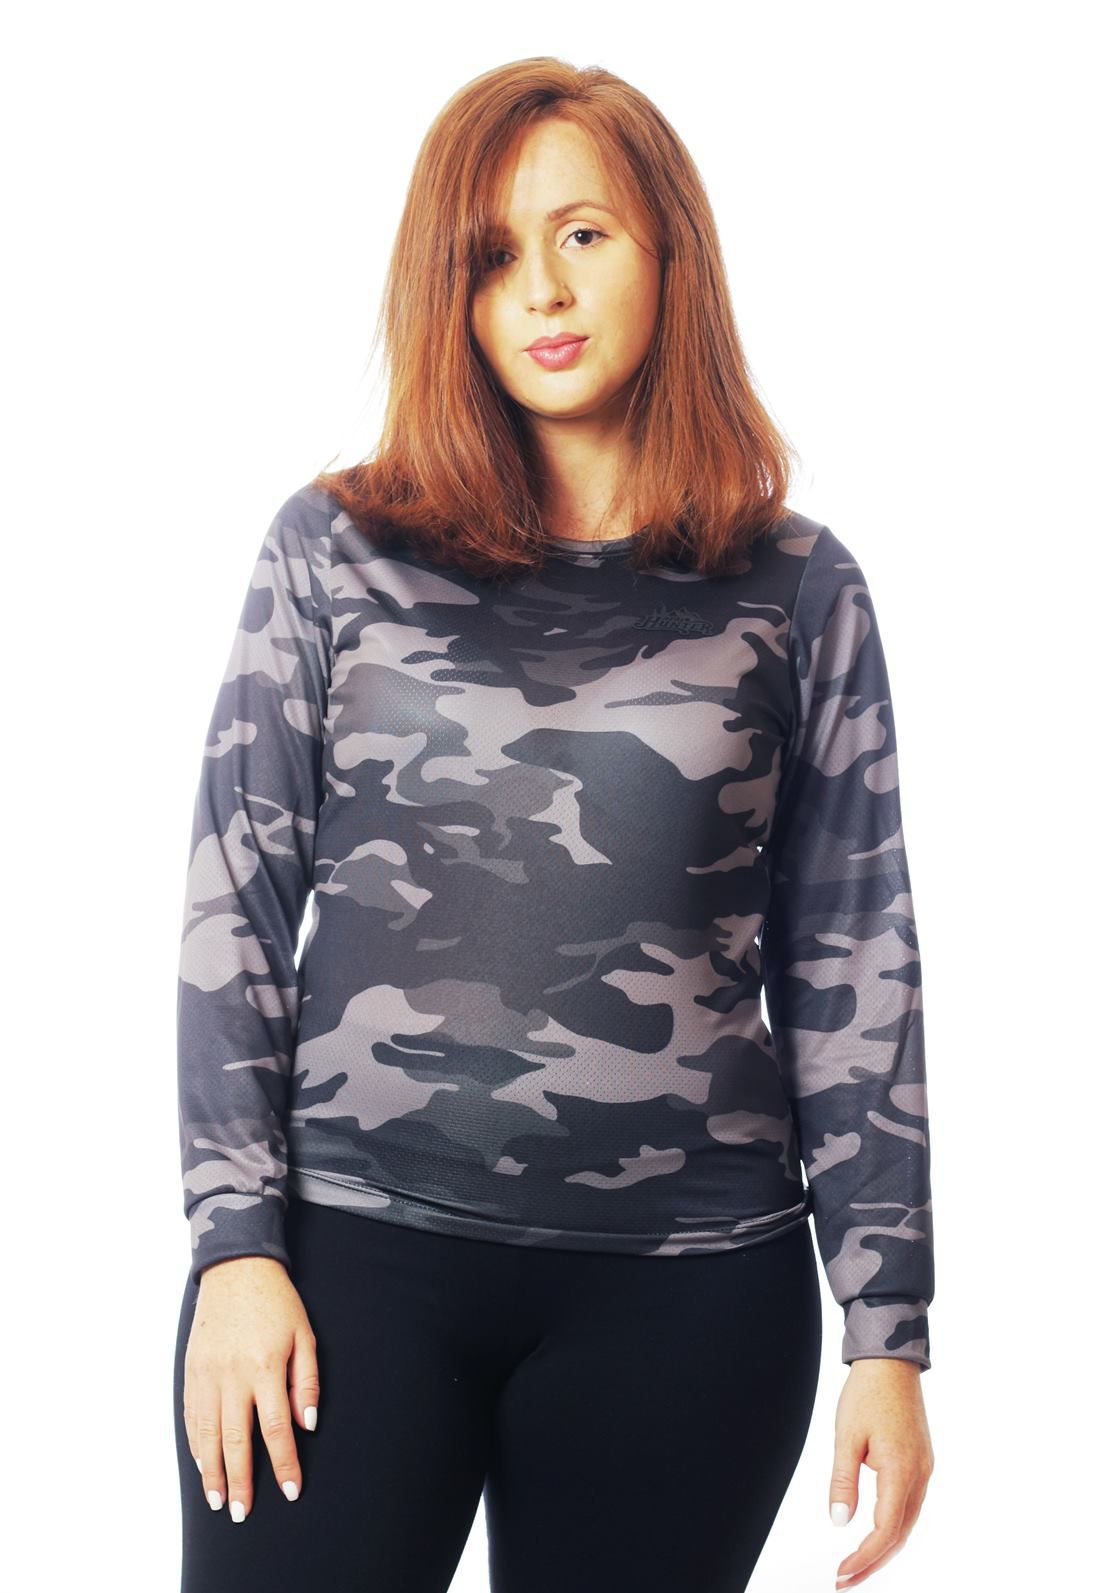 CAMISETA BABY LOOK CAMUFLADA URBANO BLACK MANGA LONGA FEMININA  - REAL HUNTER OUTDOORS